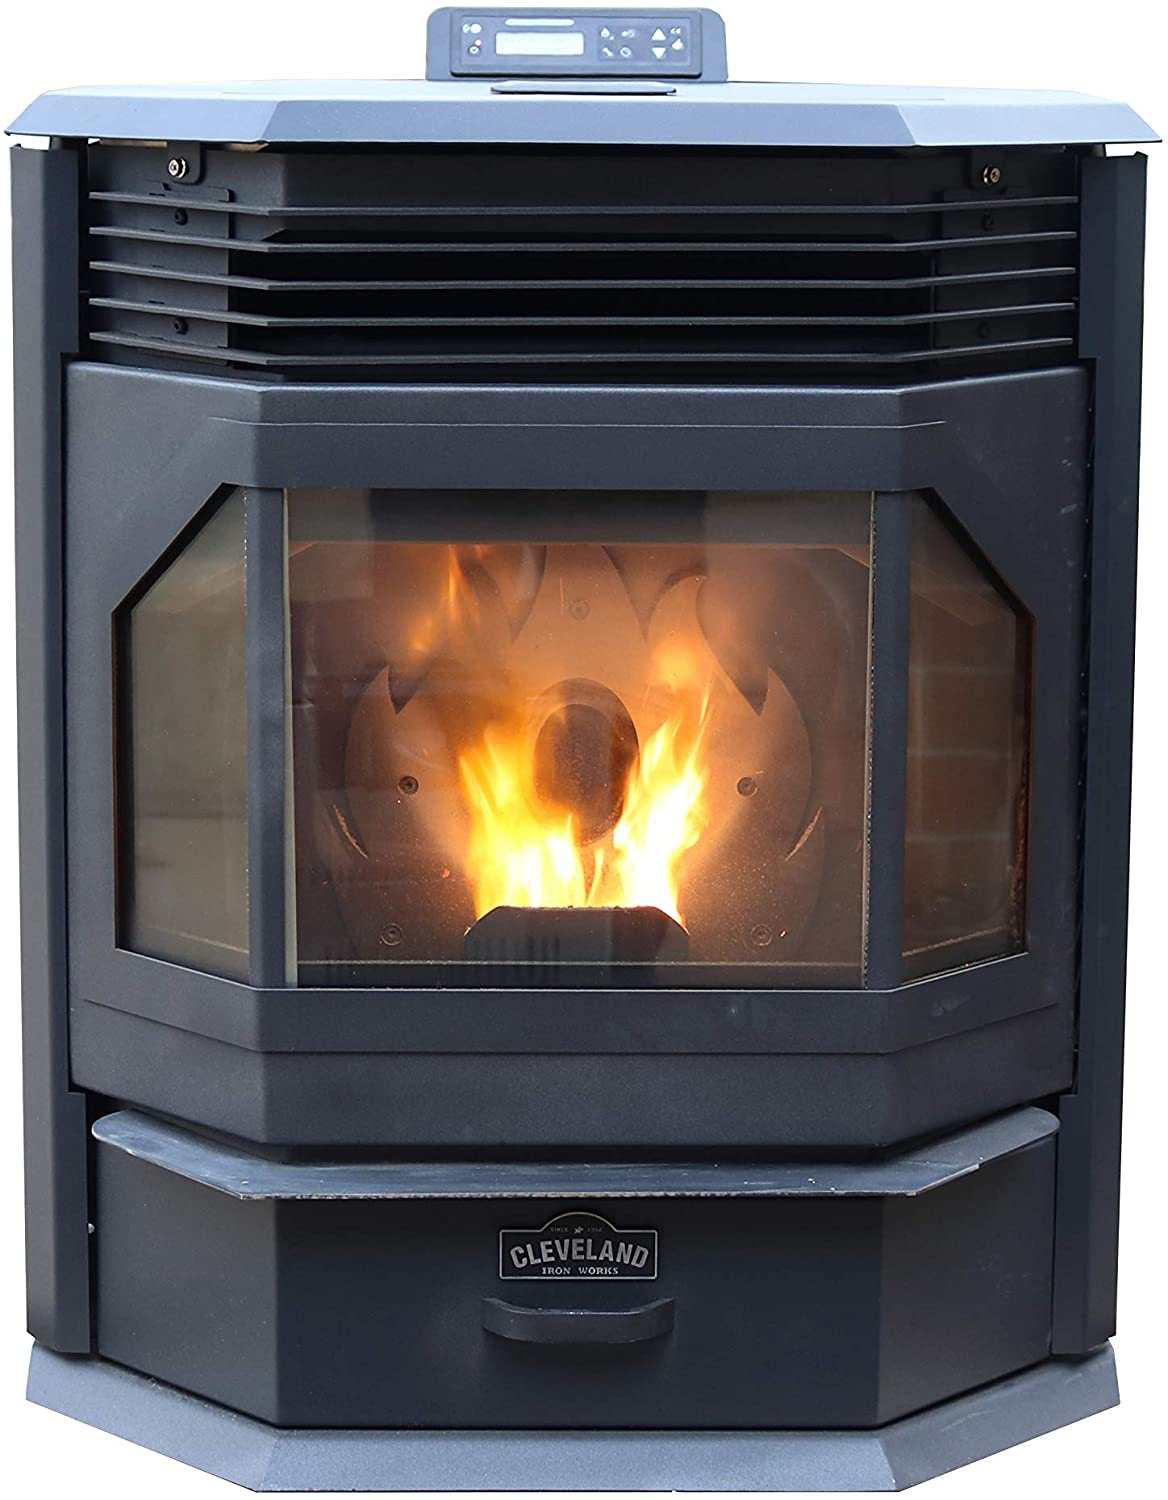 Cleveland Iron Works PSBF66W-CIW Bayfront Pellet Stove, WiFi Enabled, Black